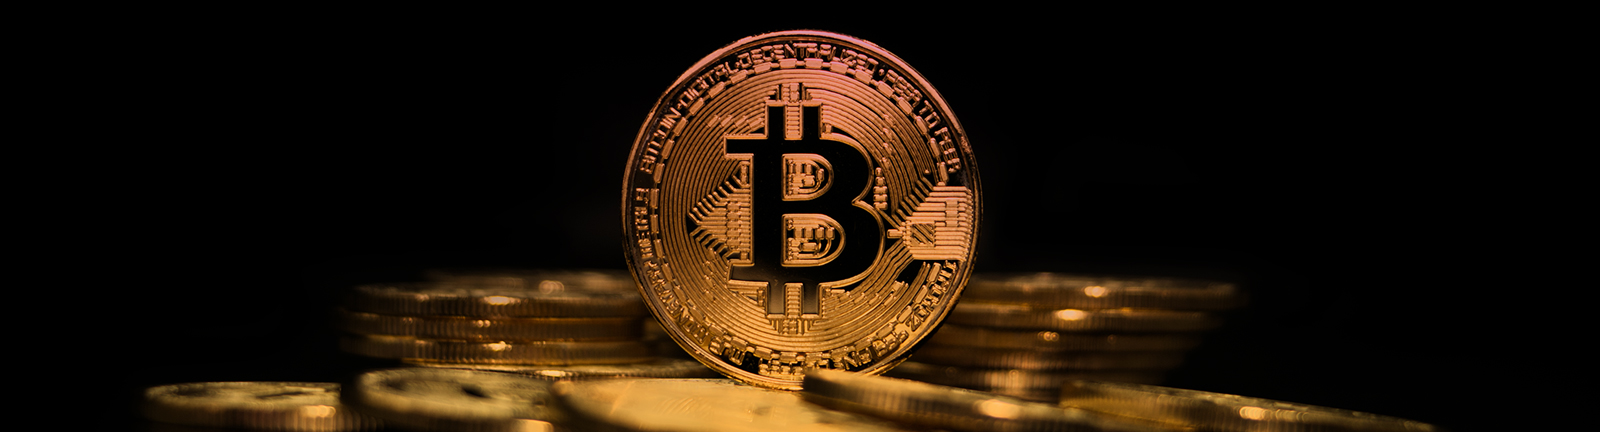 Bitcoin's wild rally: Facts that investors should know